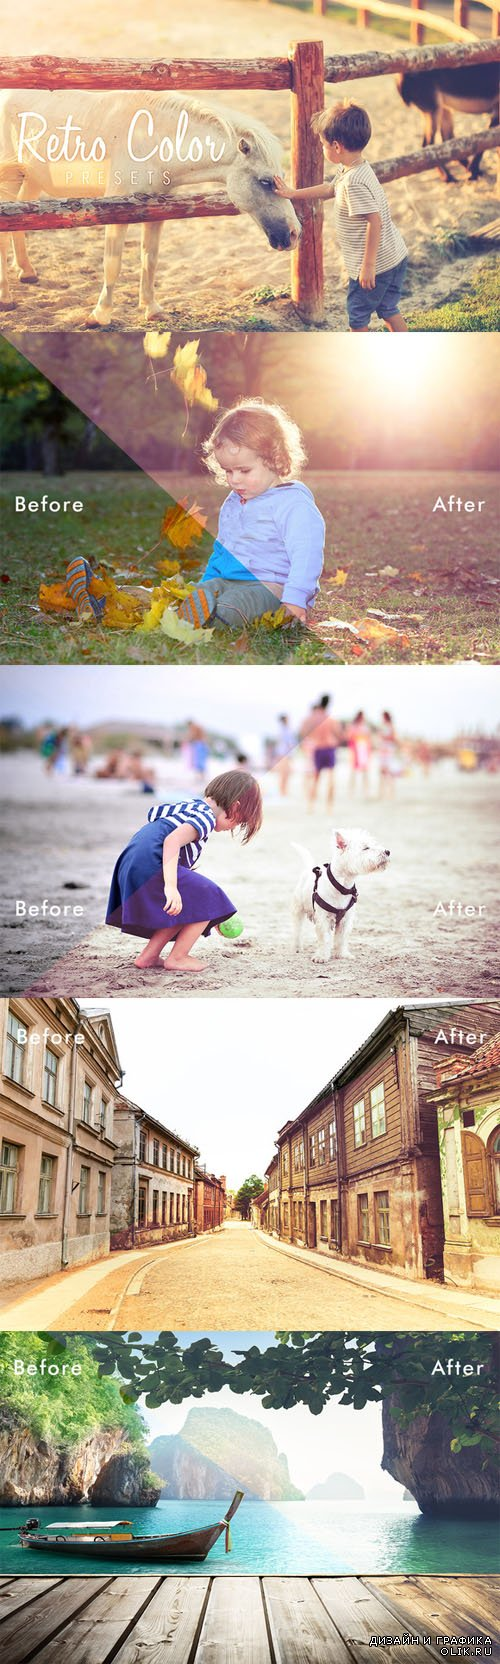 CreativeMarket - Retro Color LRM Presets 68797